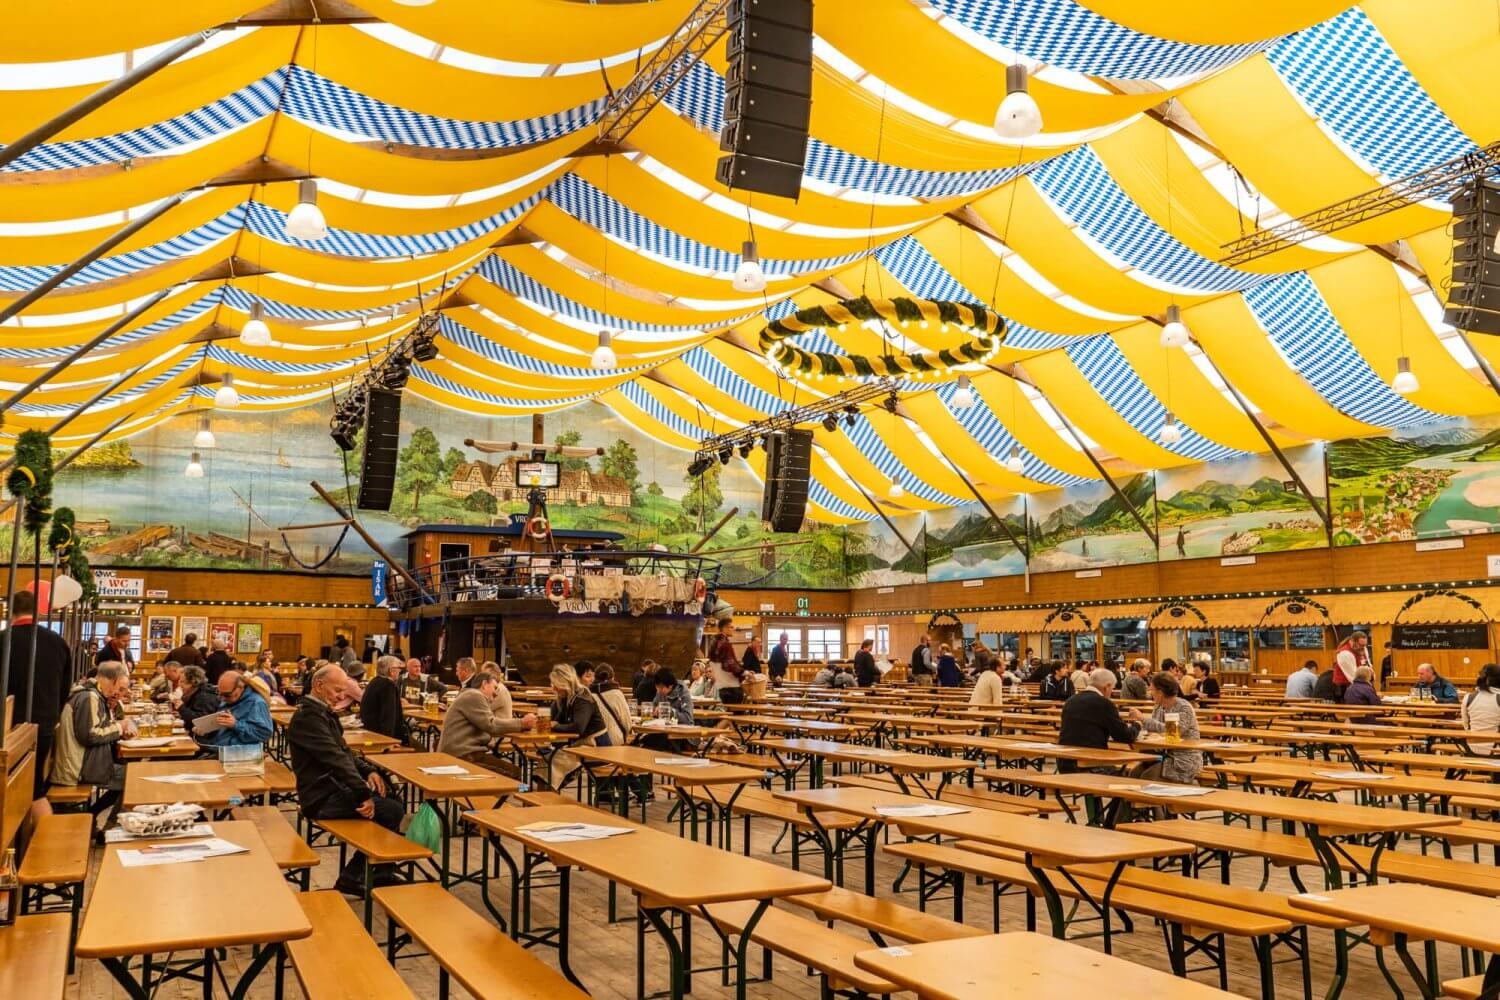 Fischer Vroni tent at Oktoberfest in Munich, Germany